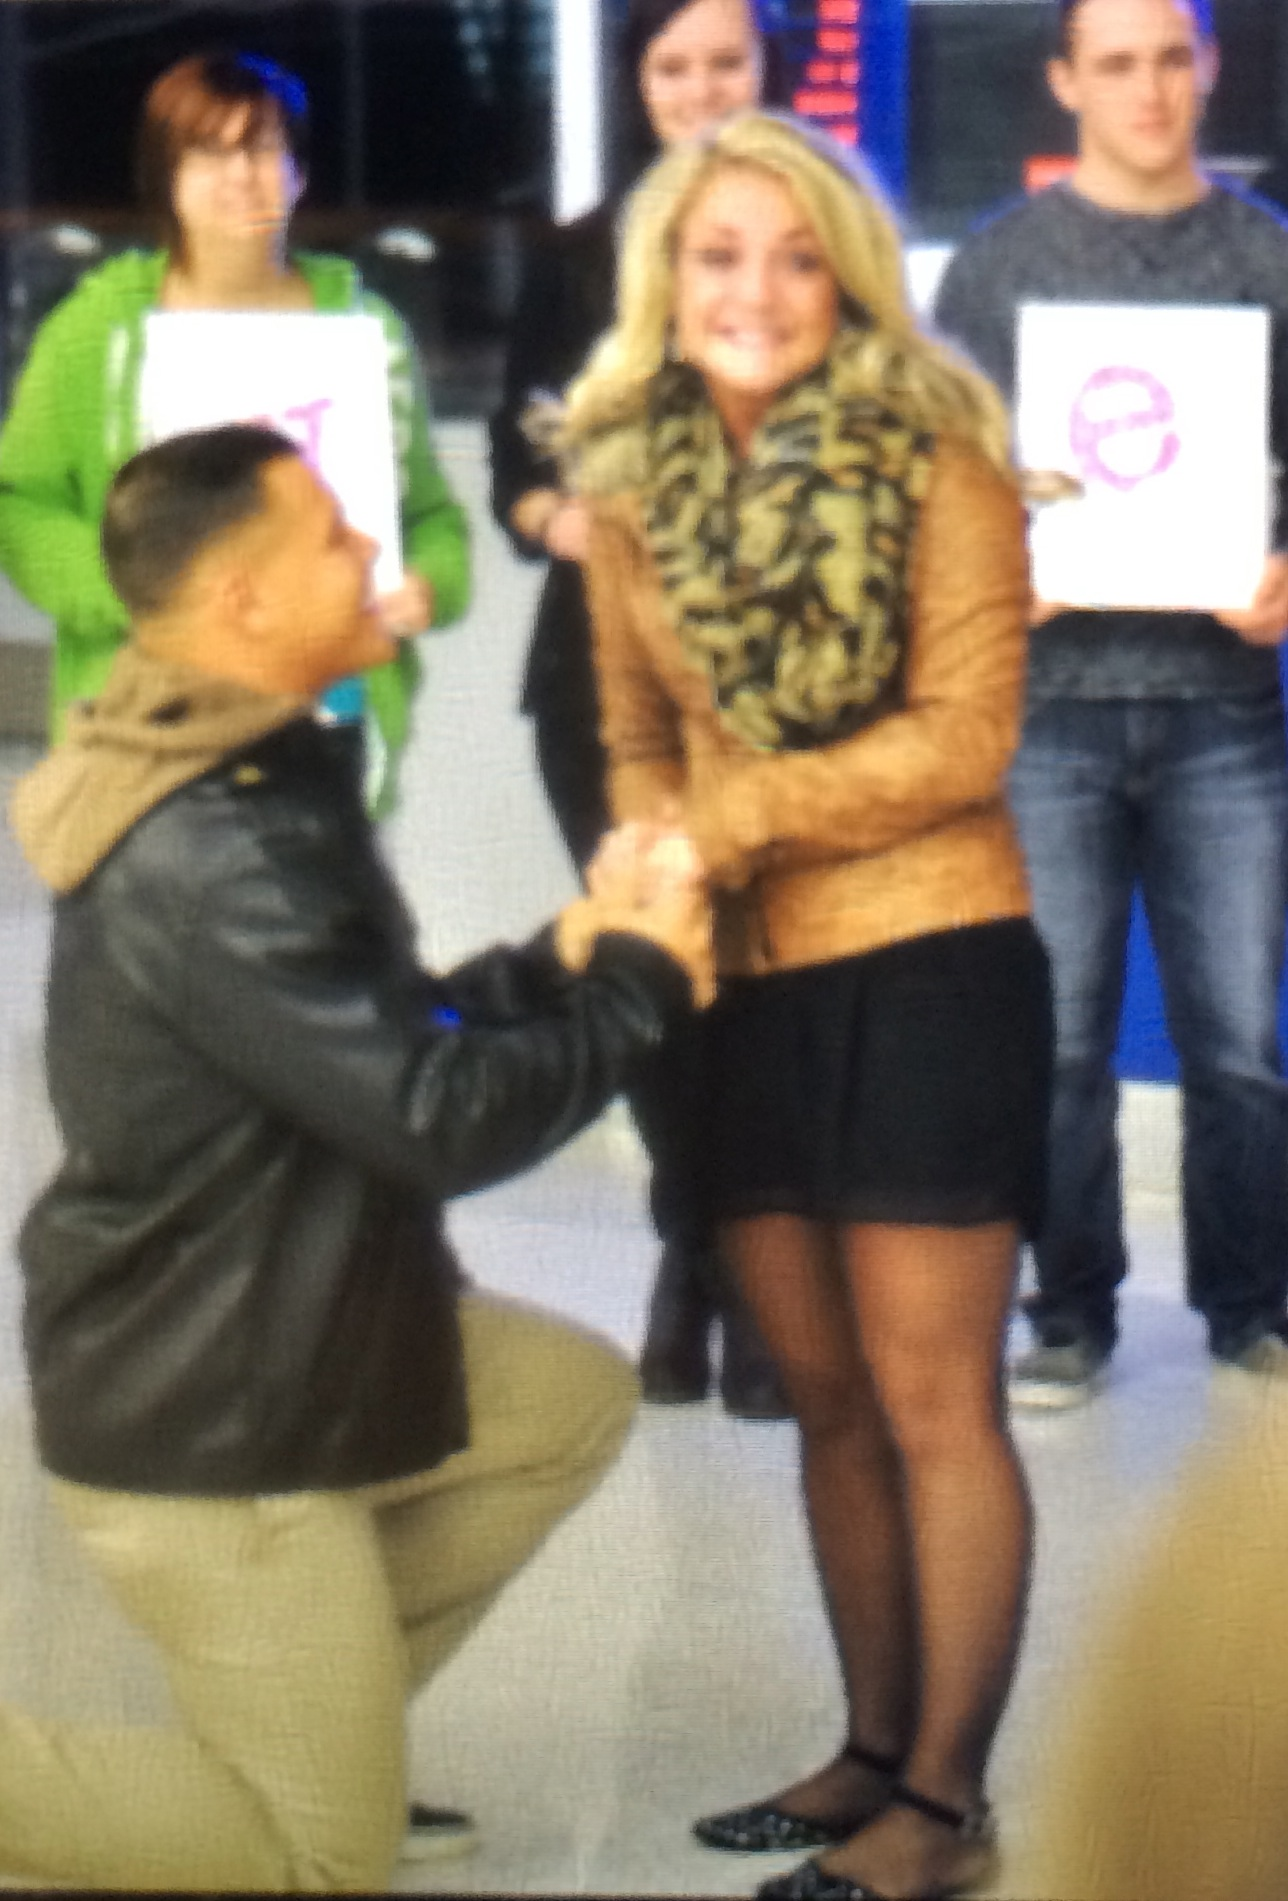 Image 3 of Gabrielle and Christian | Airport Proposal